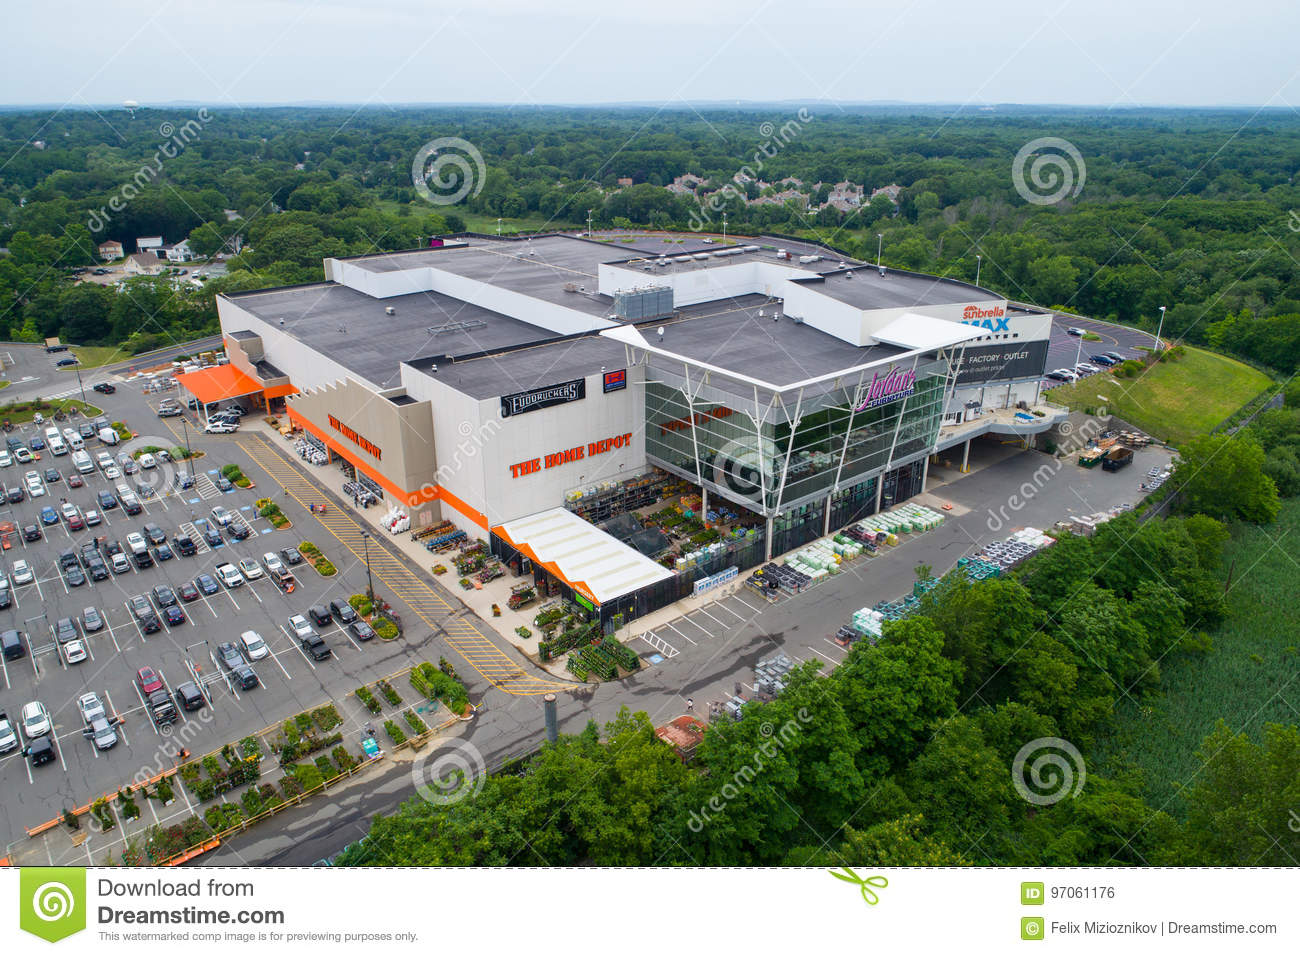 Aerial Image Of Jordans Home Depot Shopping Center Reading